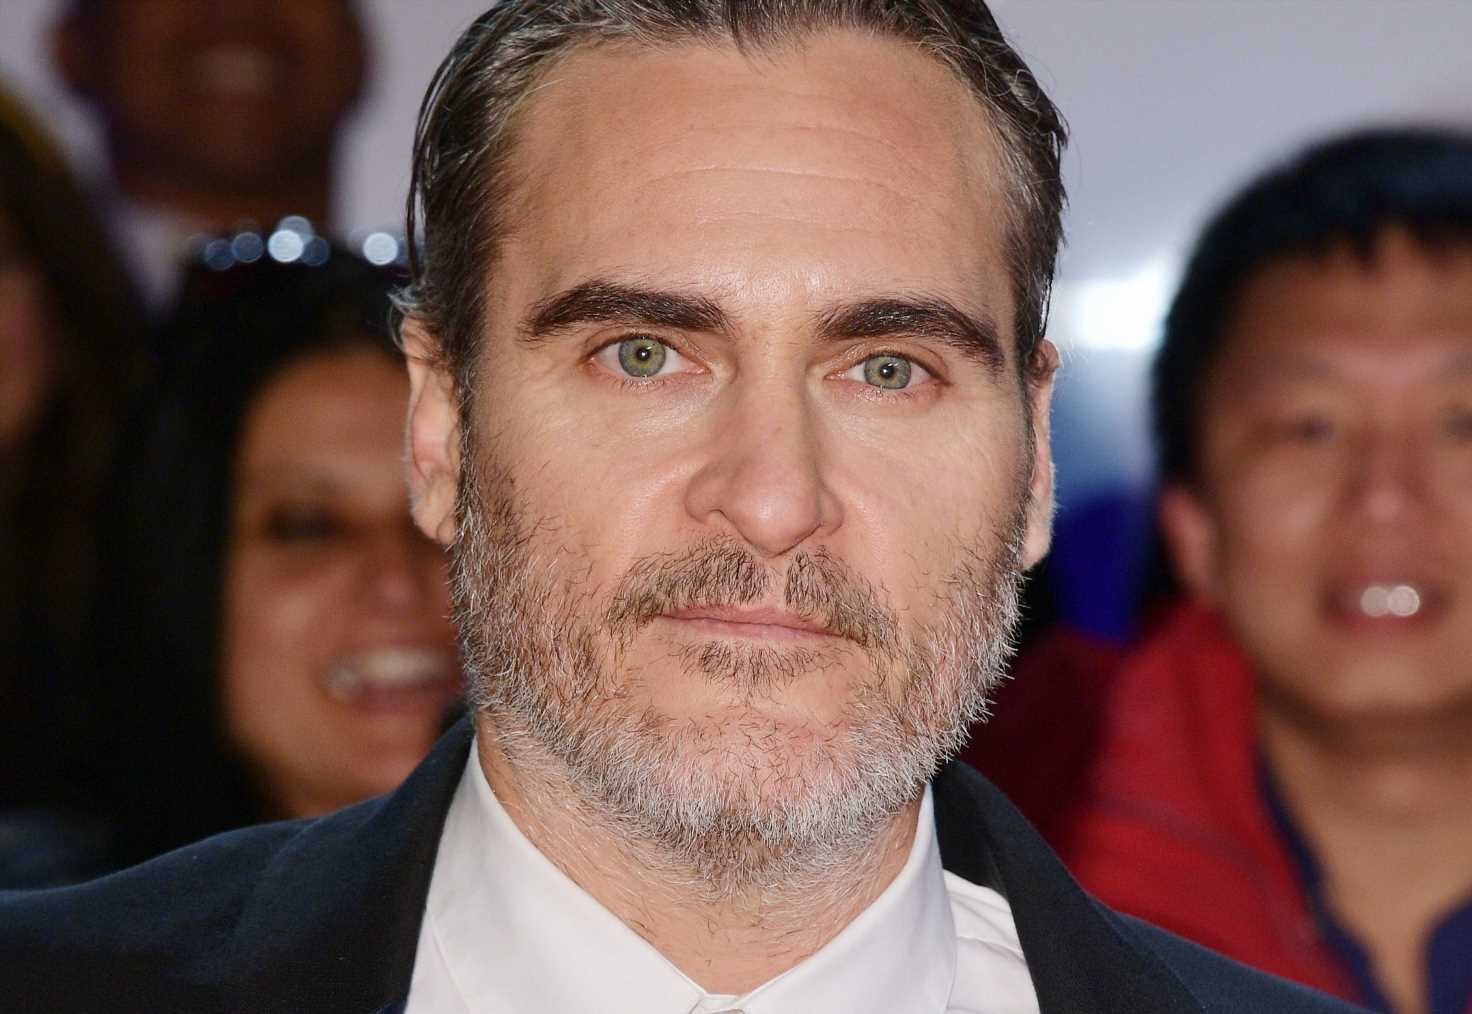 Joker actor Joaquin Phoenix 'storms out of interview after being asked if film will inspire real life violence' – The Sun